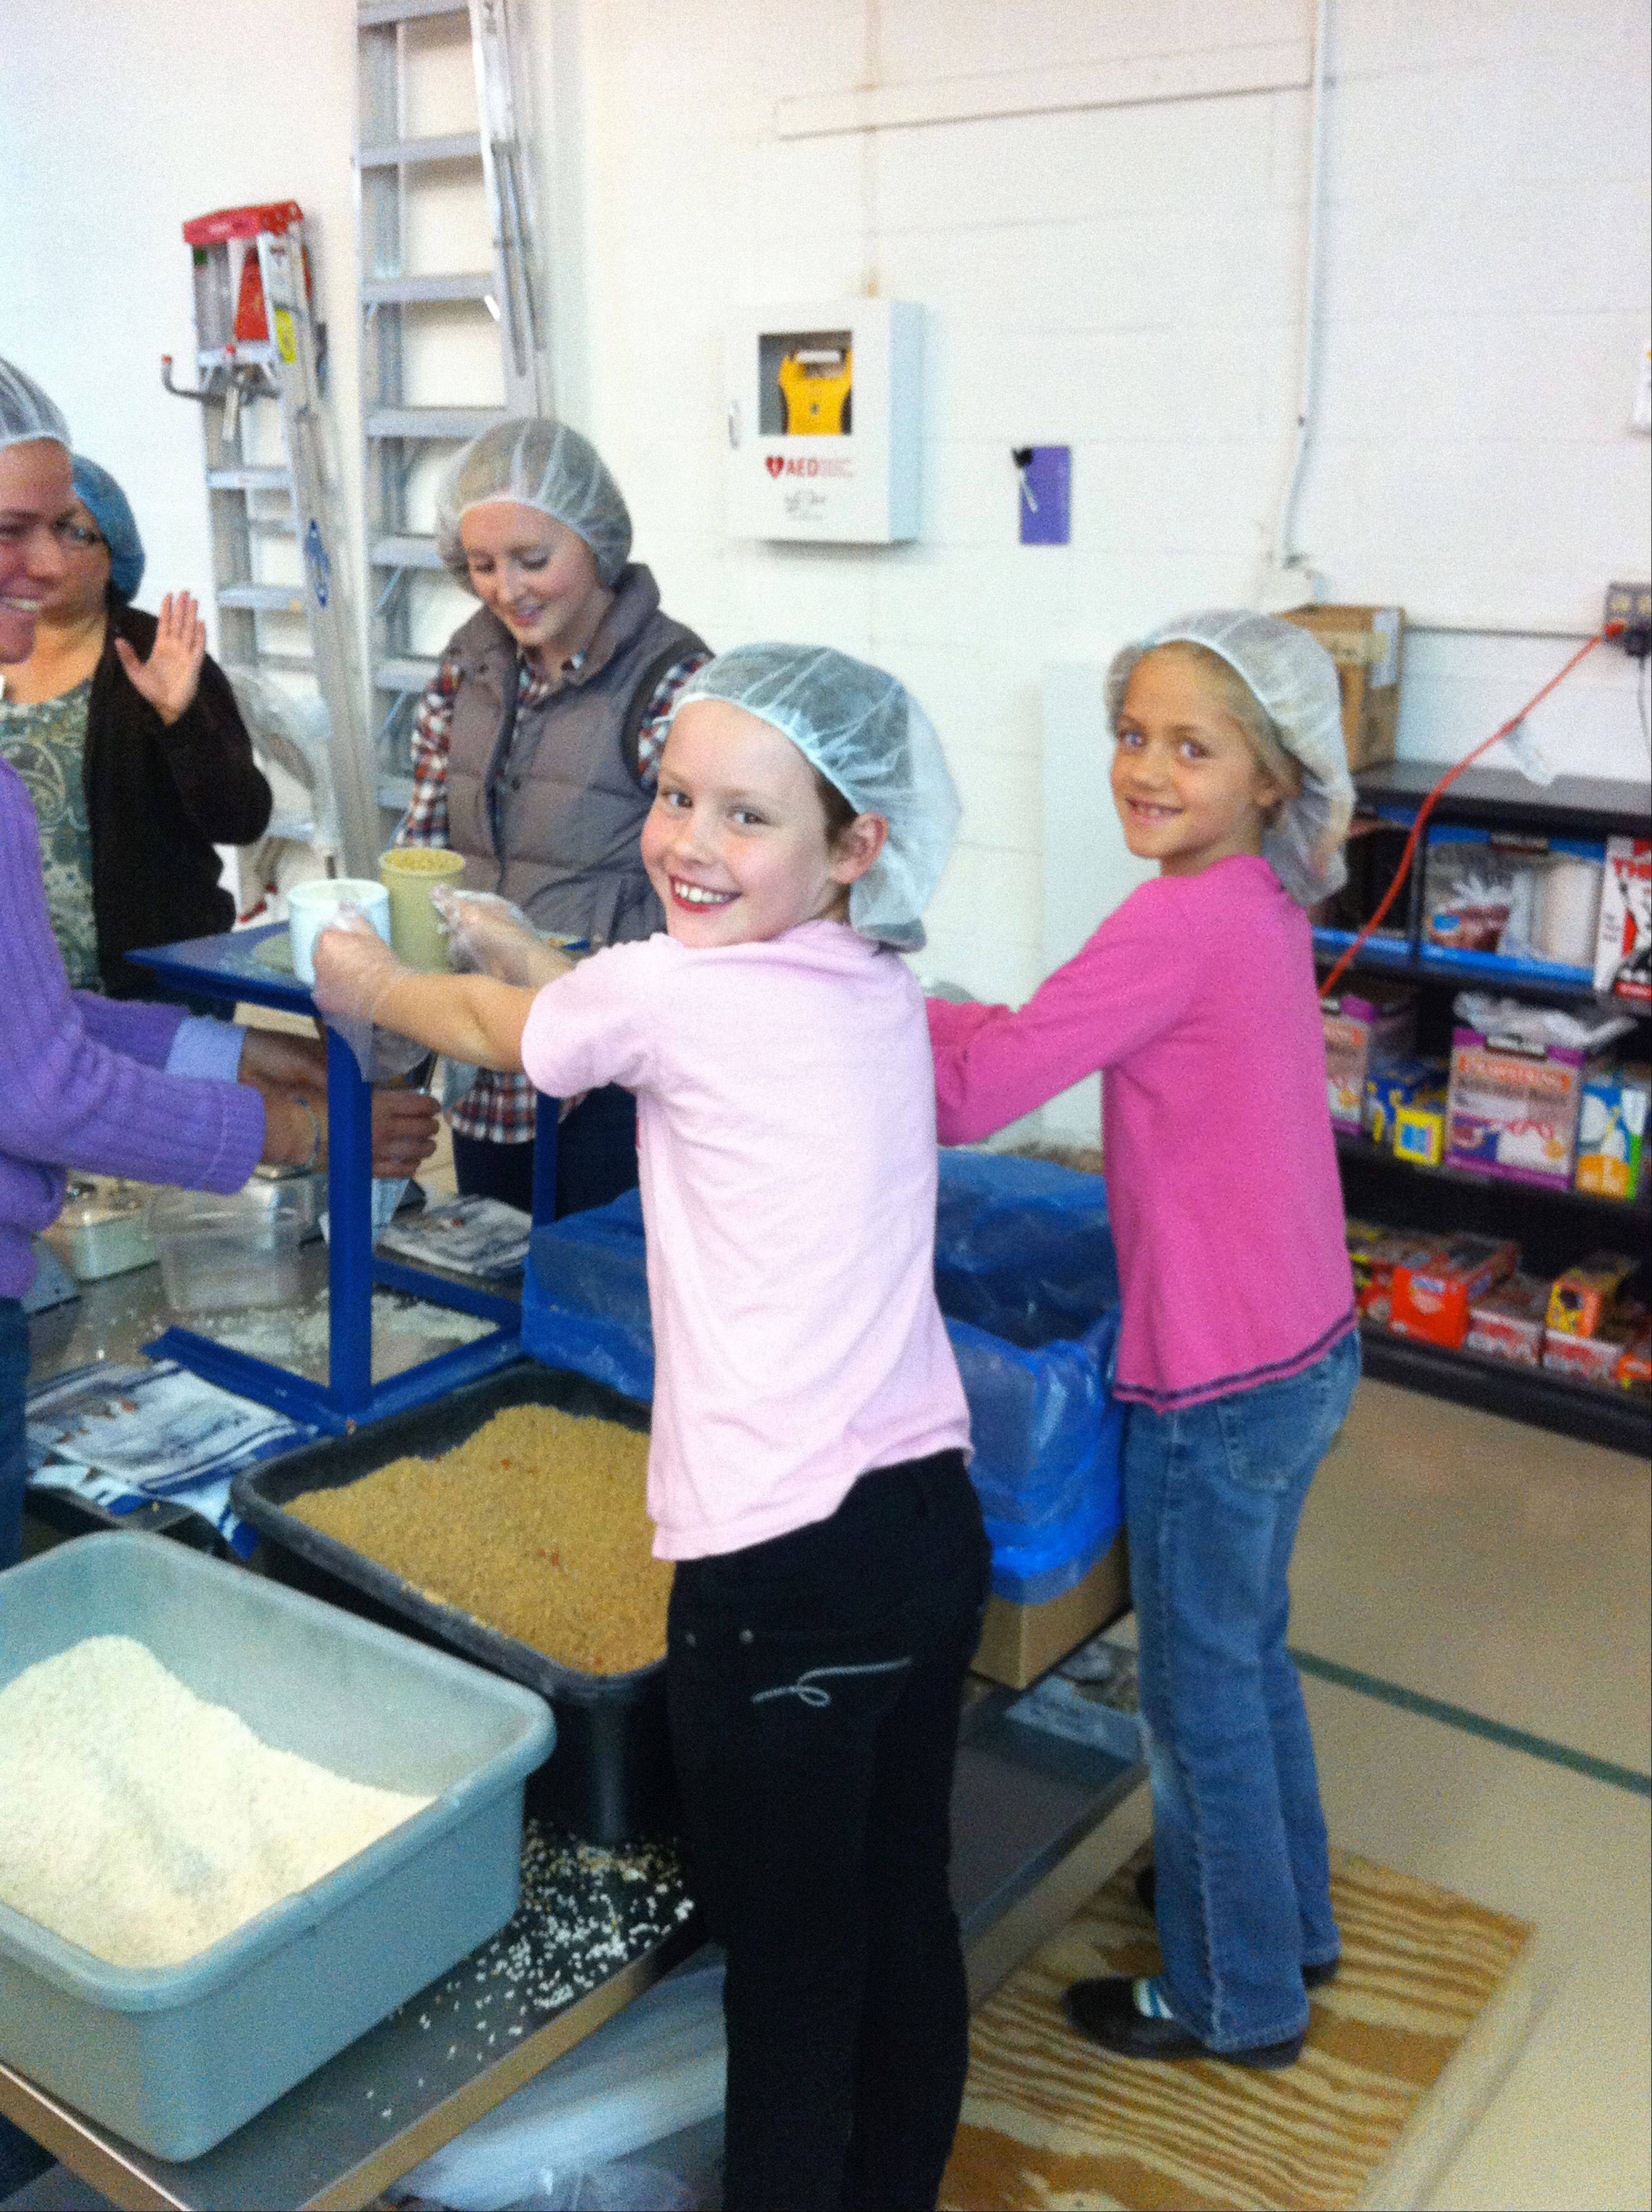 Madeline Handrich, left, and her friend, Laurie Taranowski, both 9, joined their families in filling food bags for Feed My Starving Children when the charity set up a mobile event at East Lake Academy in Lake Forest last spring.